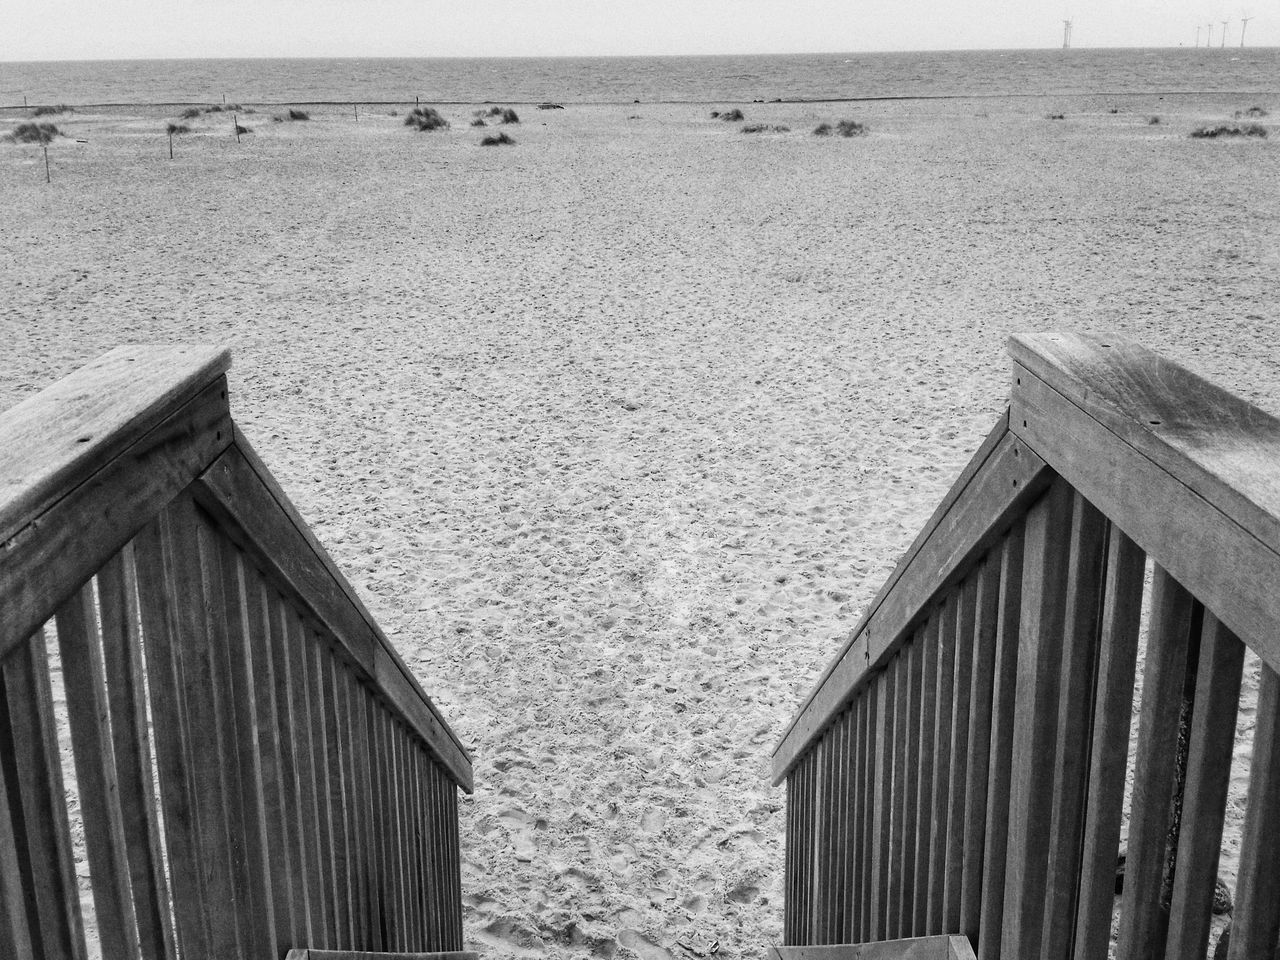 Beach Photography Black & White Black And White The KIOMI Collection Landscapes Steps To Beach Showcase April